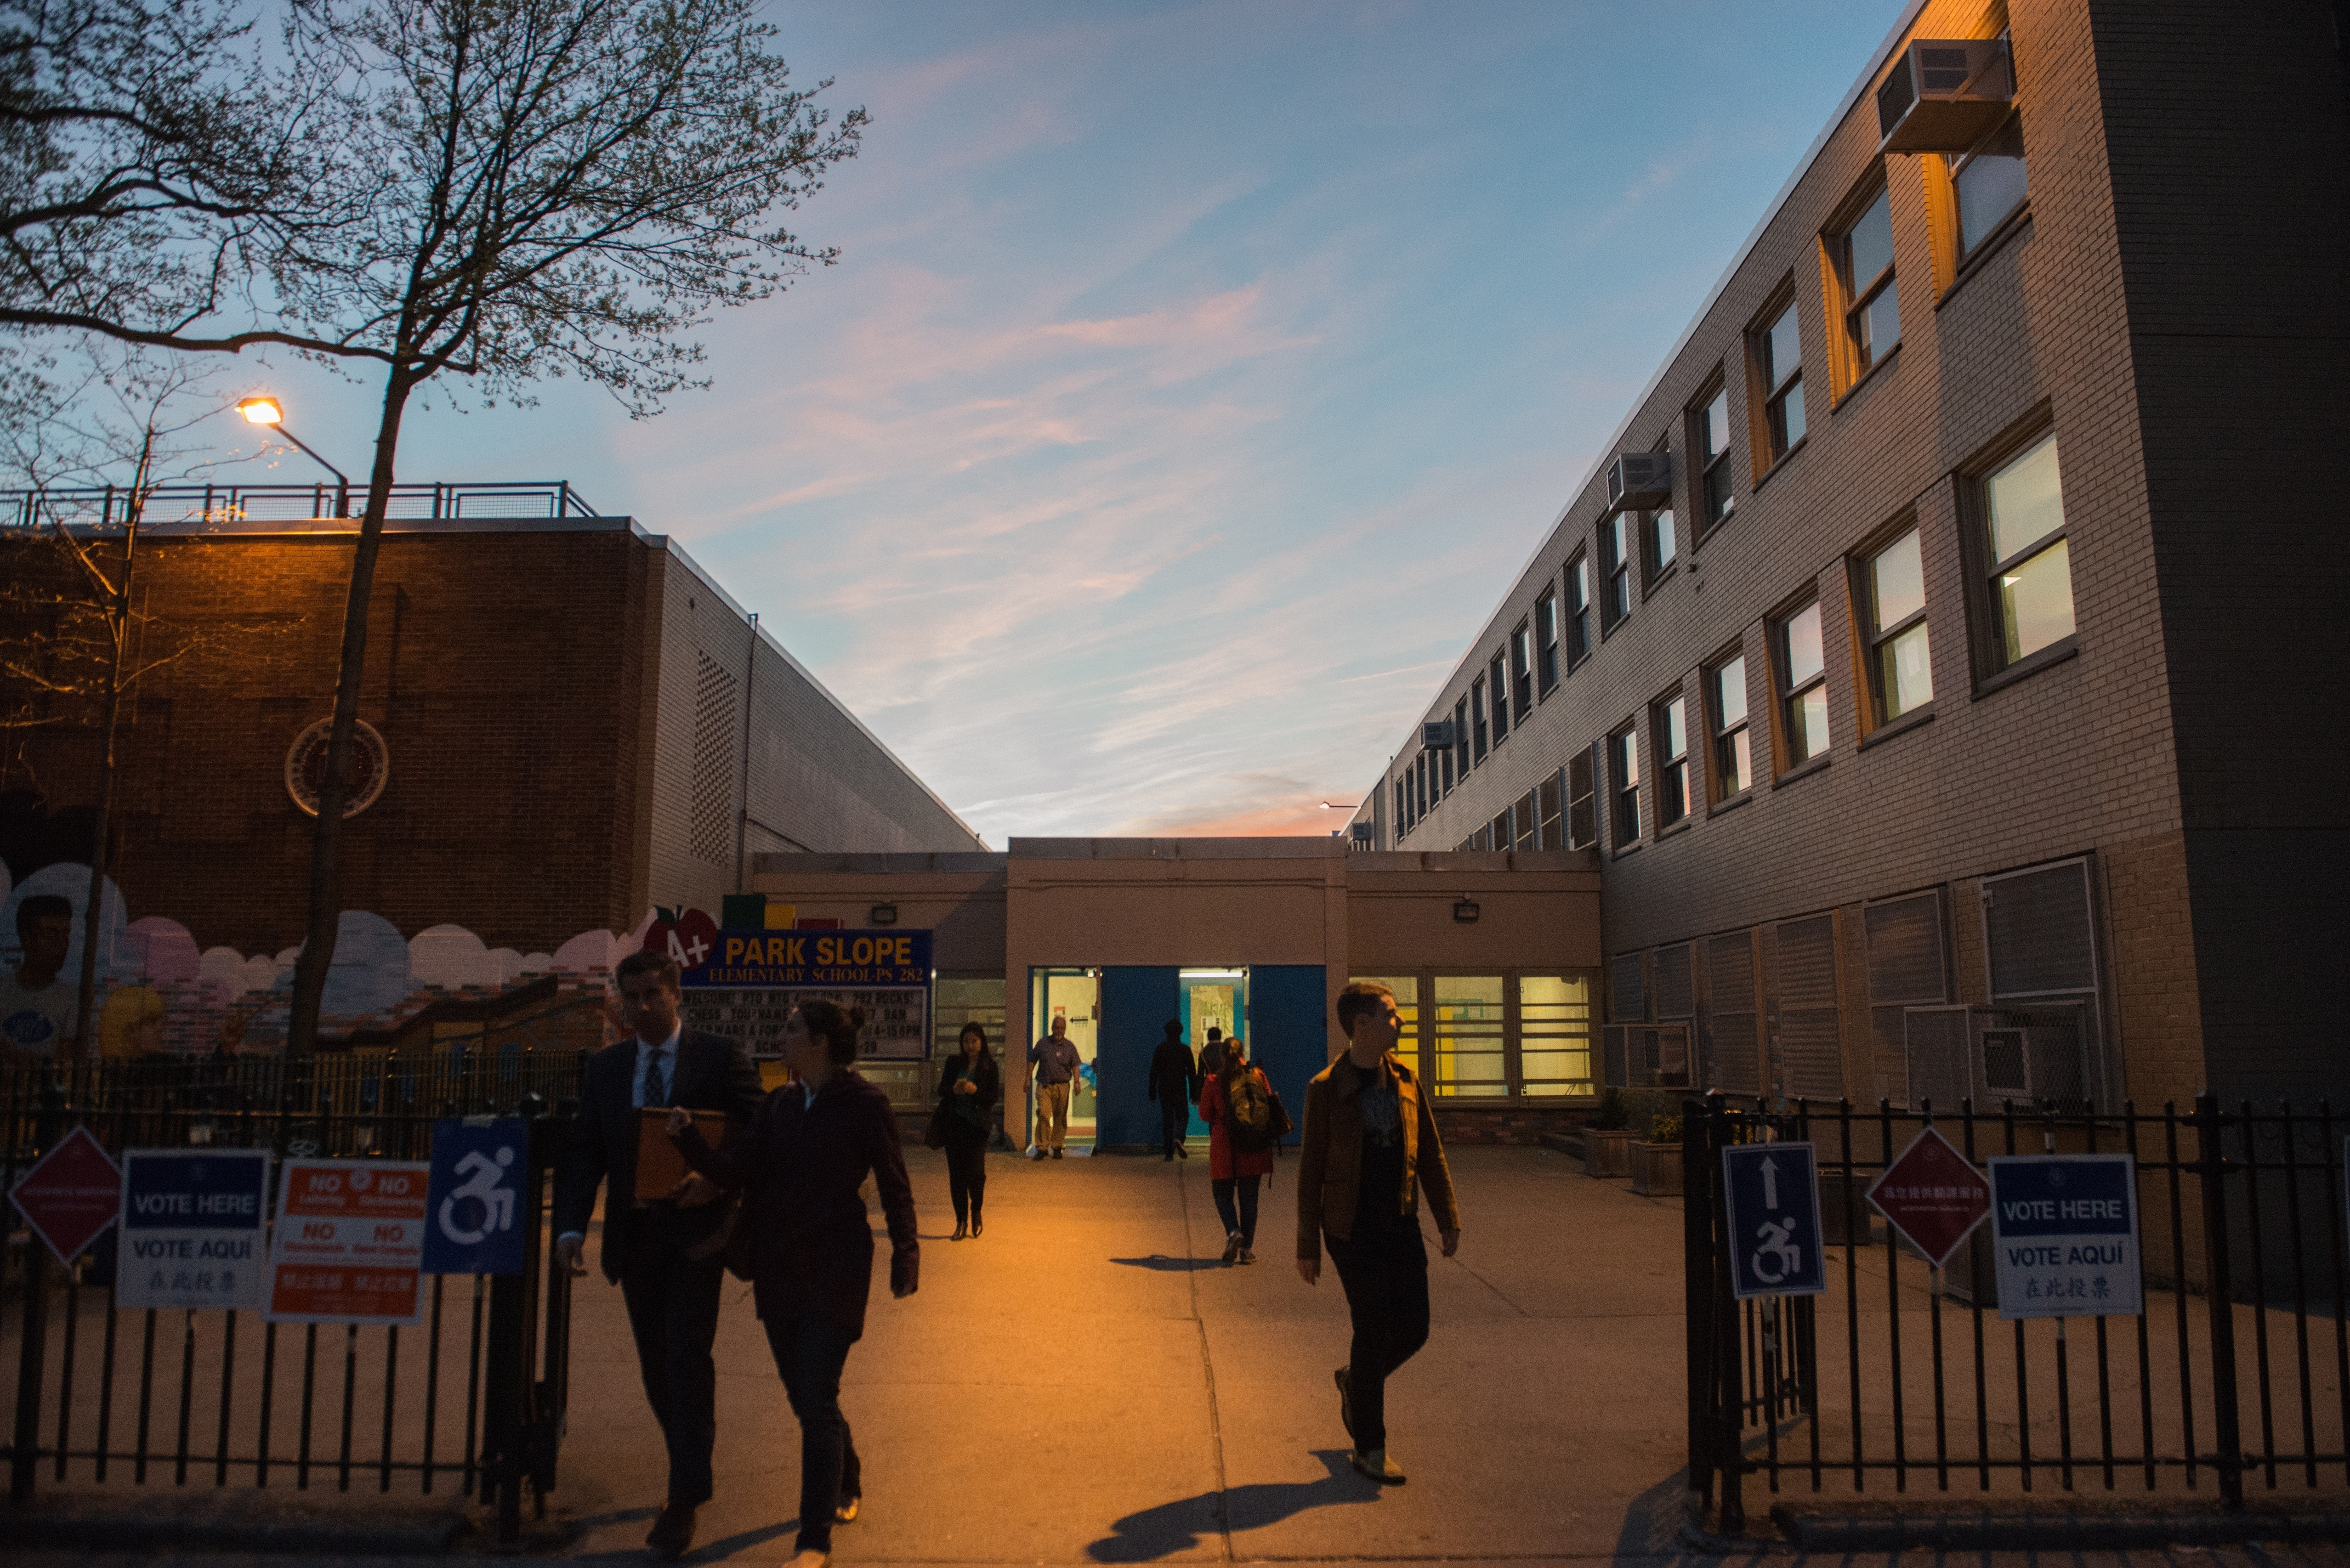 People exit the building after voting at P.S. 282 in Brooklyn on Tuesday. Stephanie Keith /Getty Images